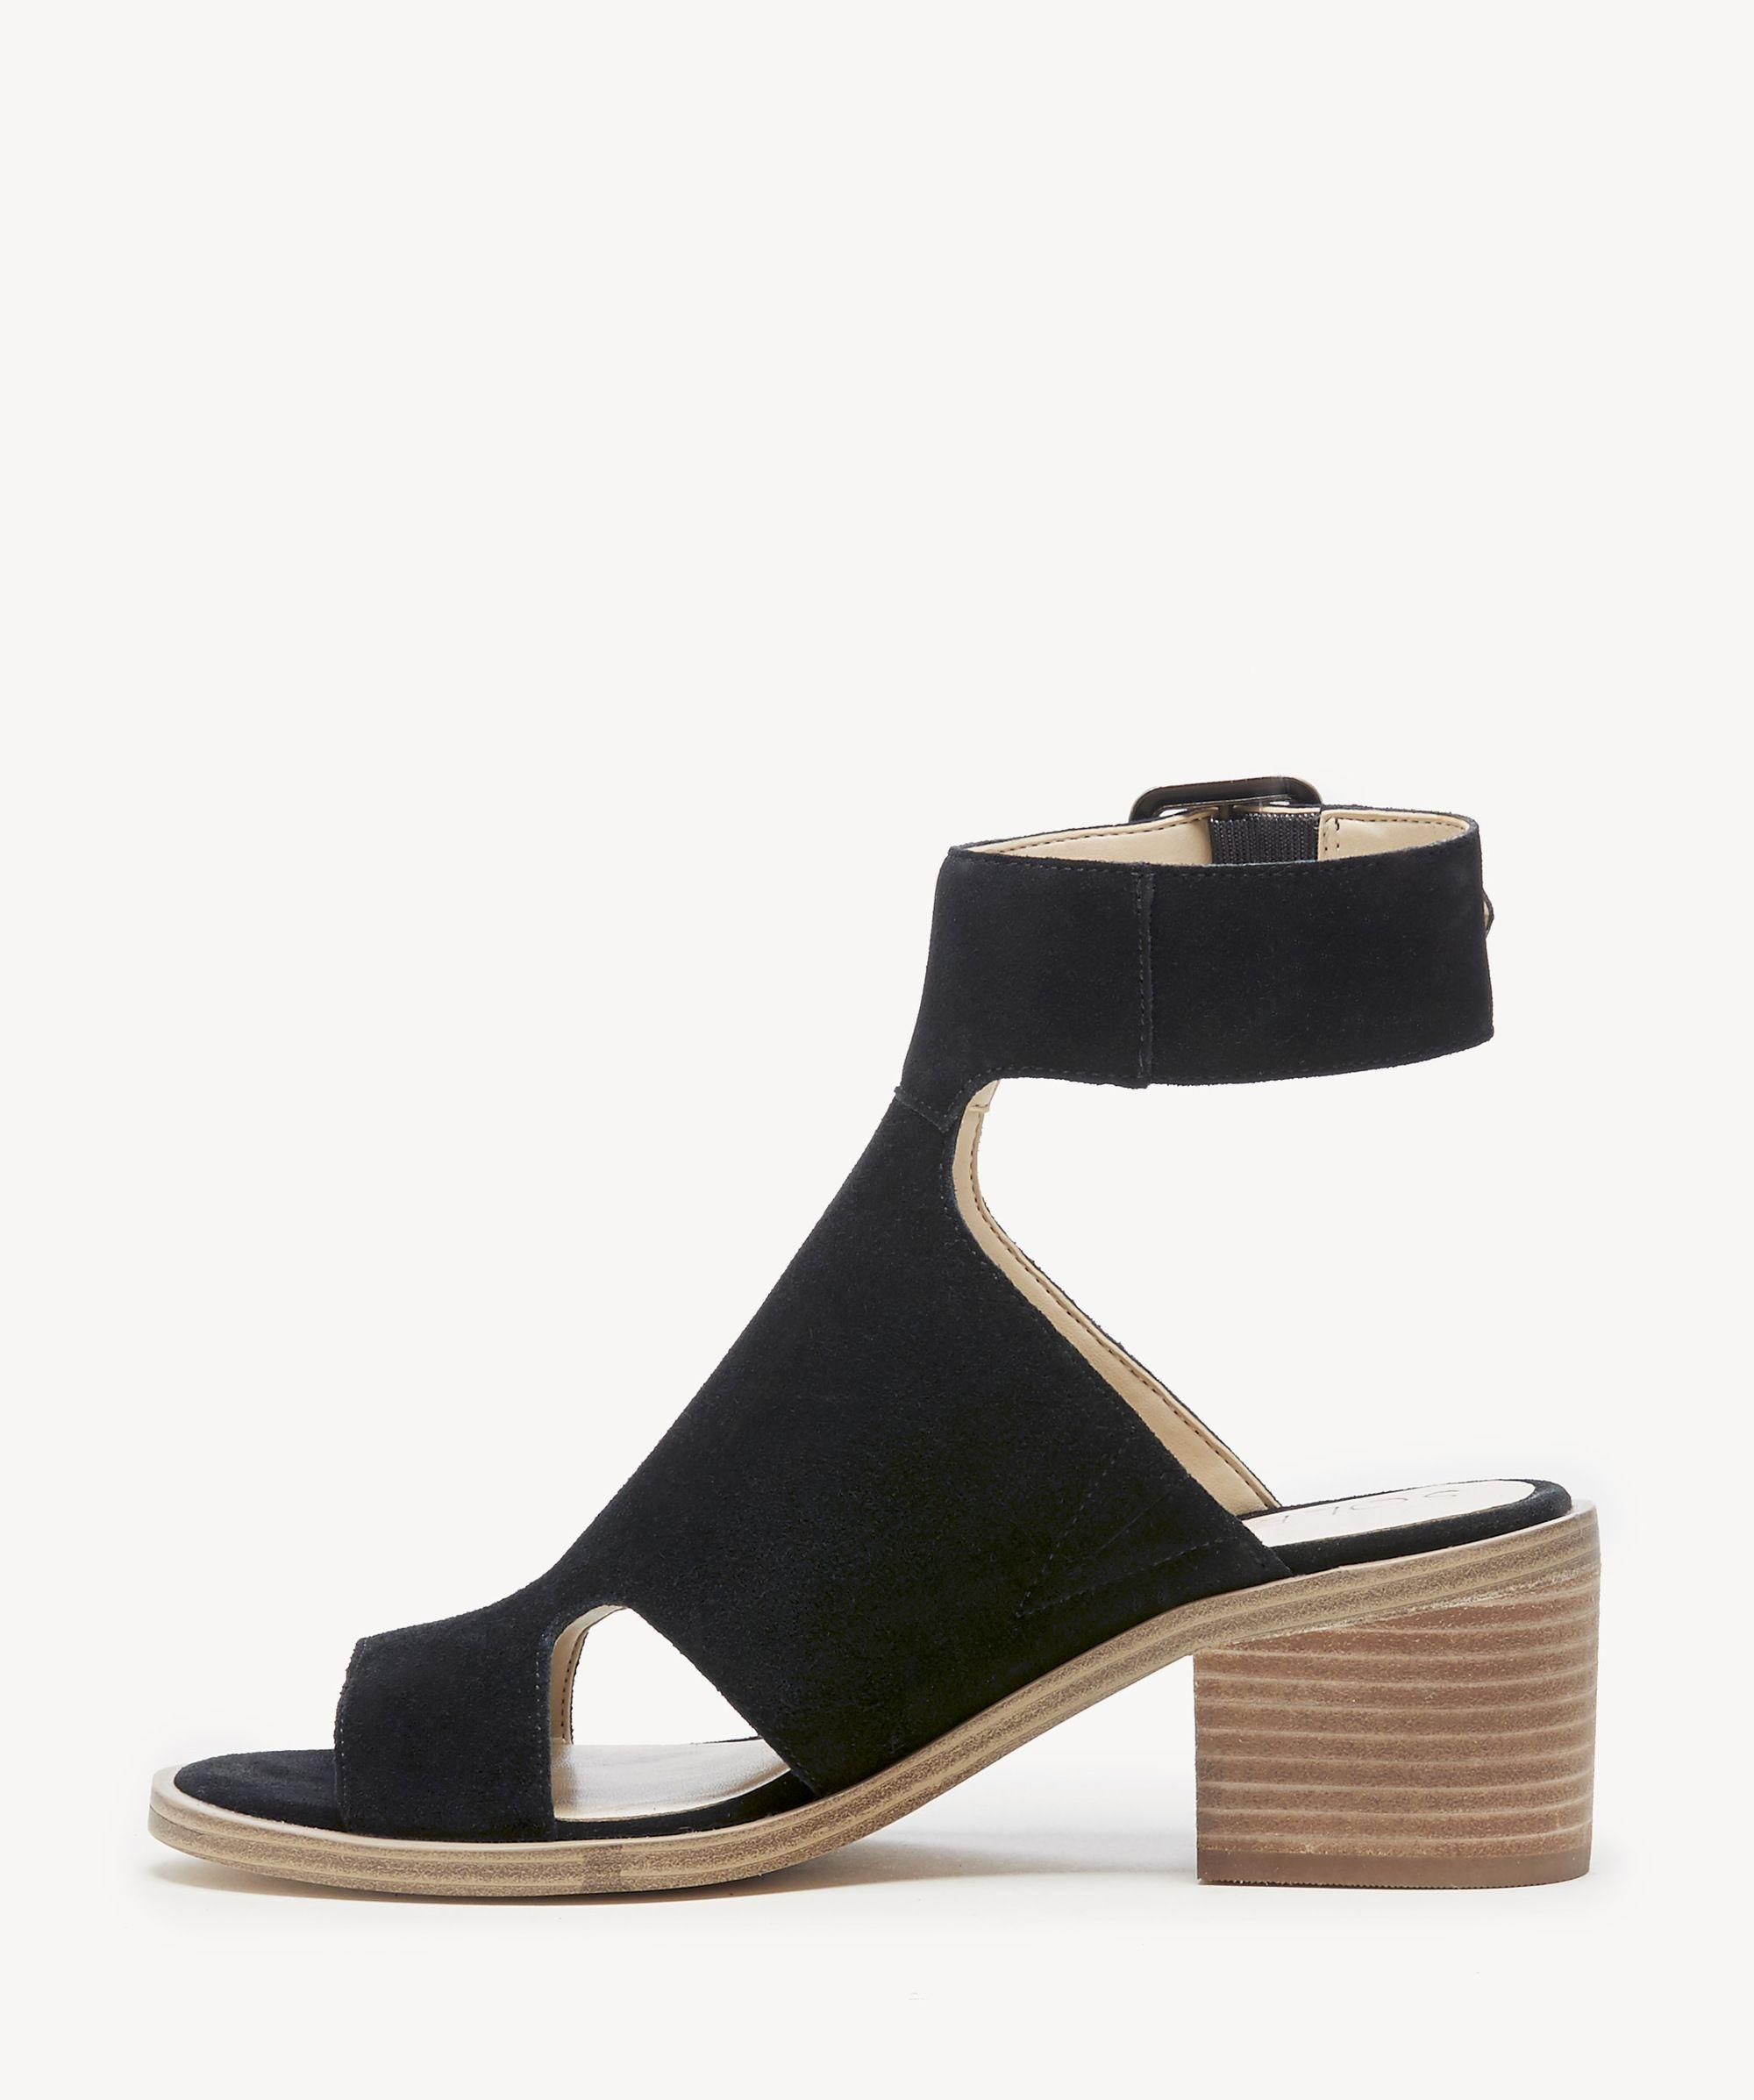 c59dc8d415d5b6 Lyst - Sole Society Tally Block Heel Sandal in Black